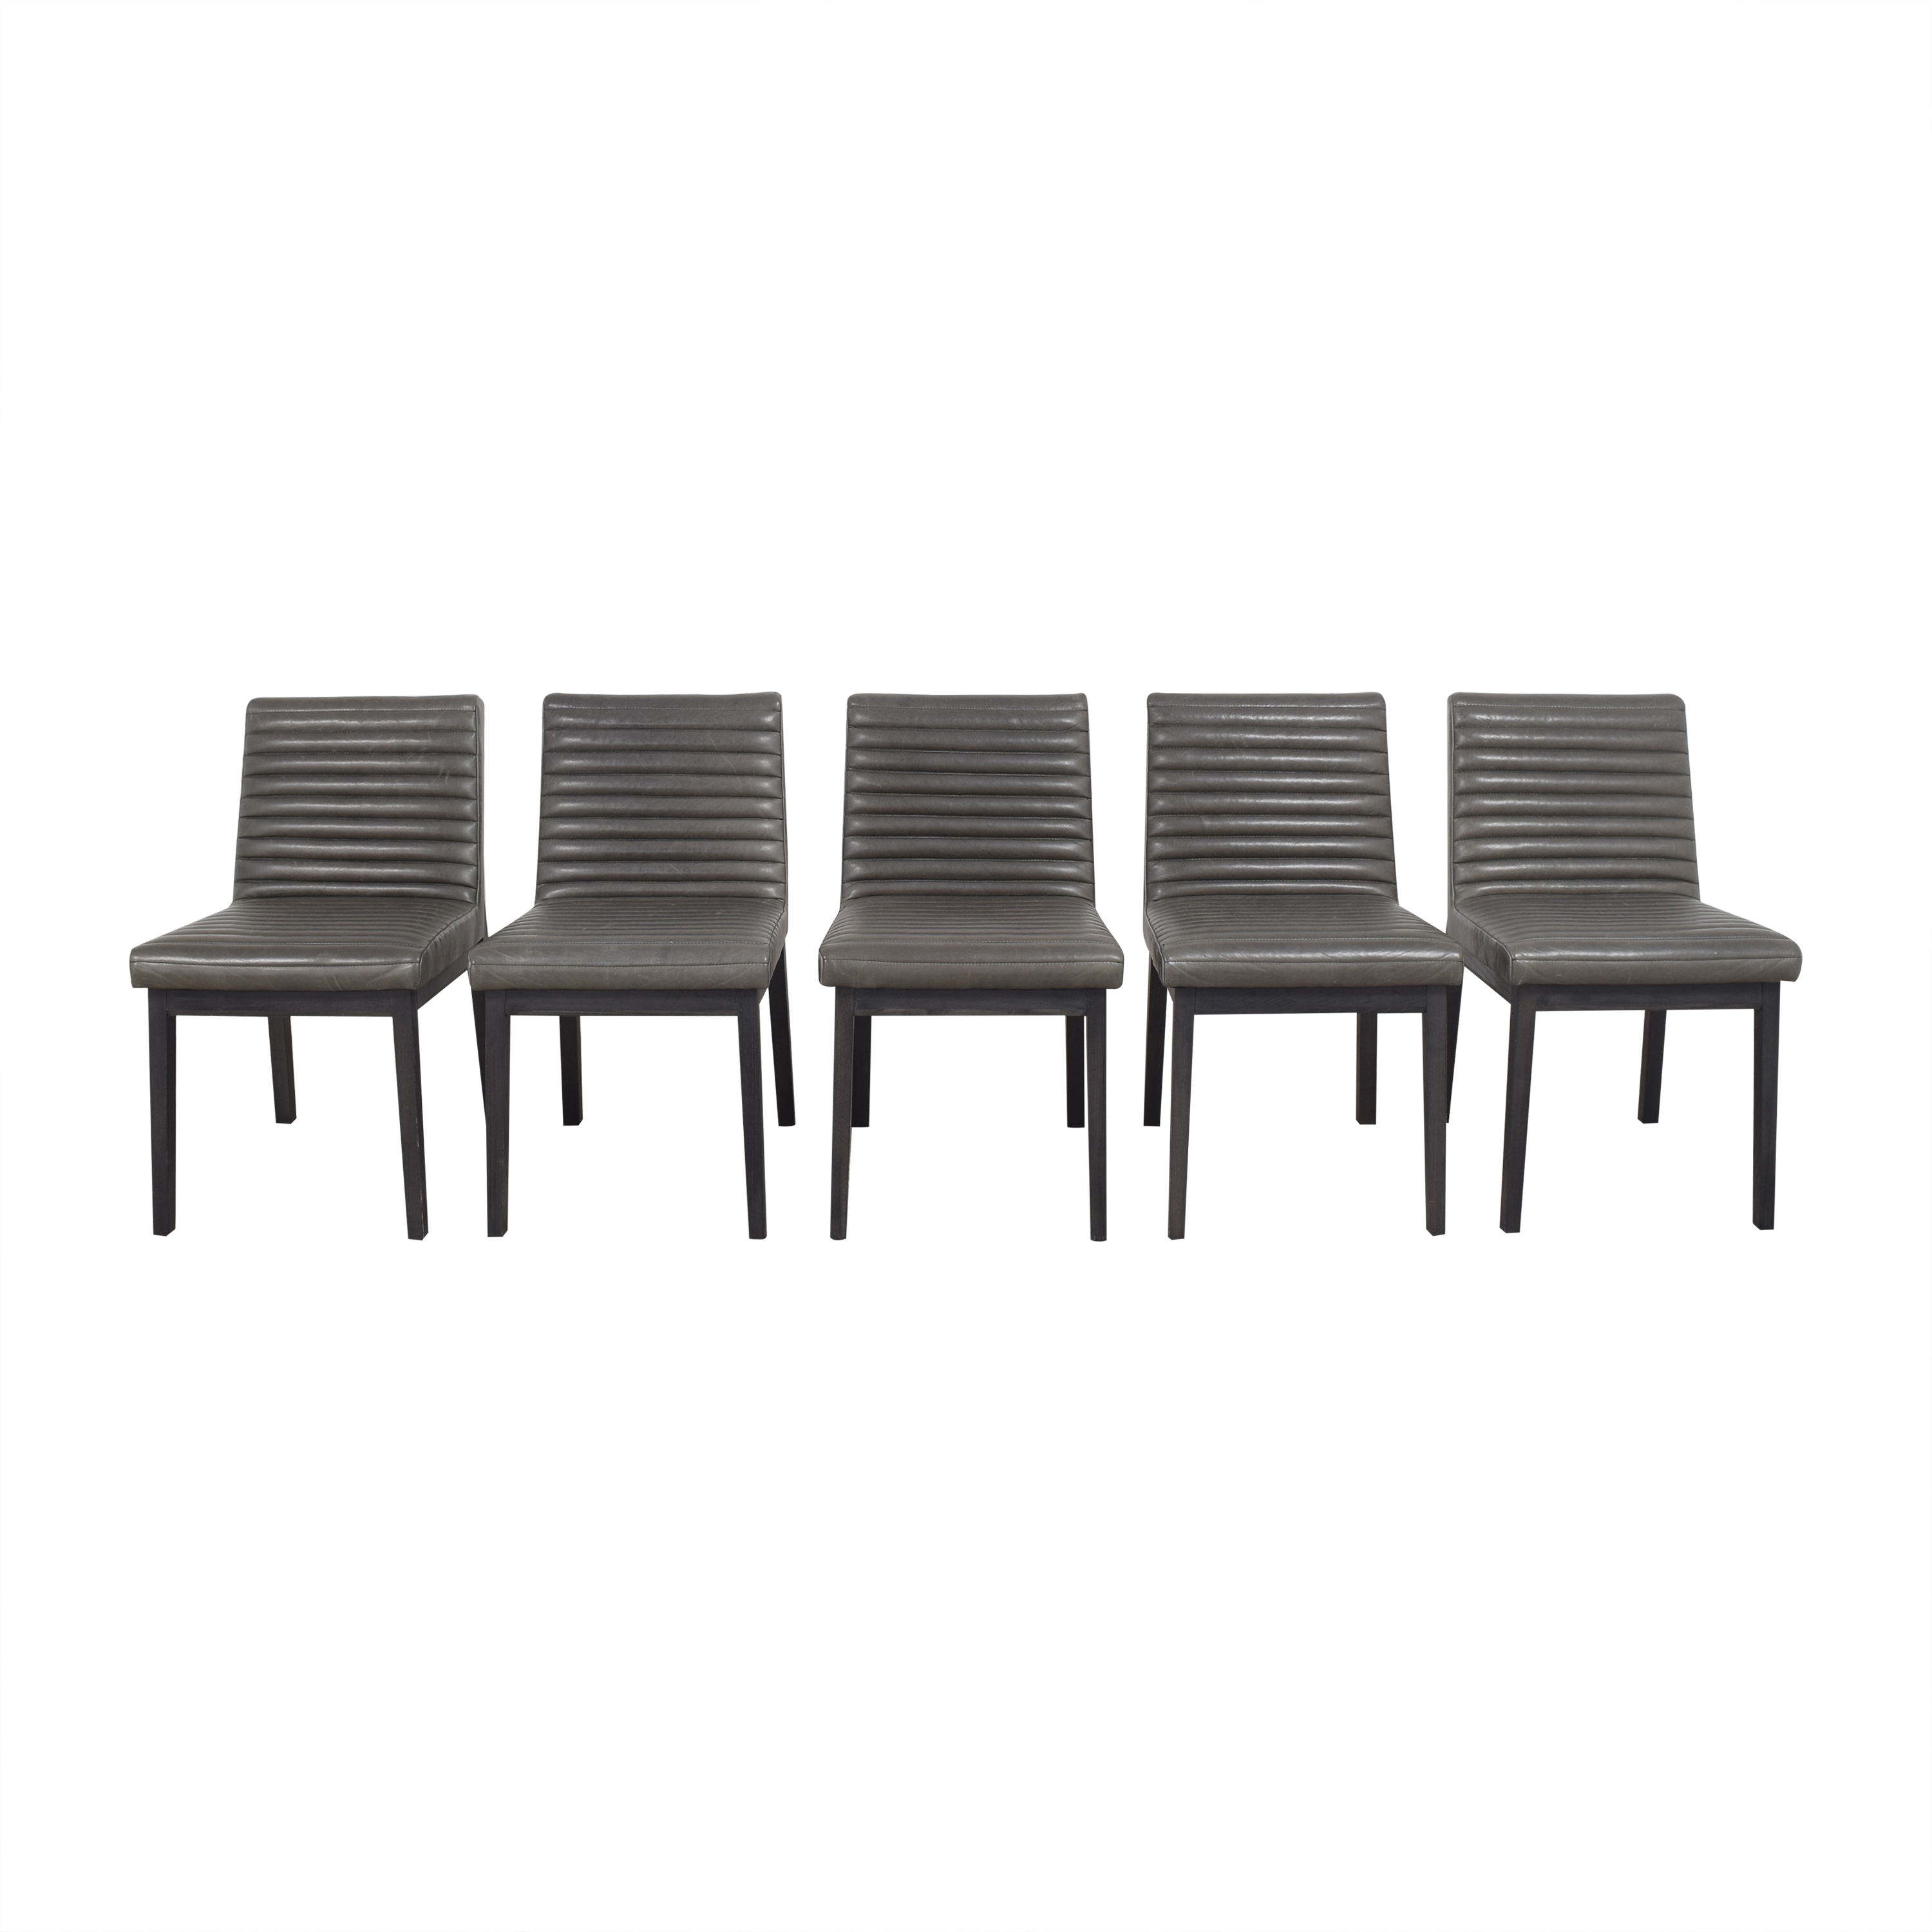 shop Room & Board Room and Board Olsen Dining Chairs online